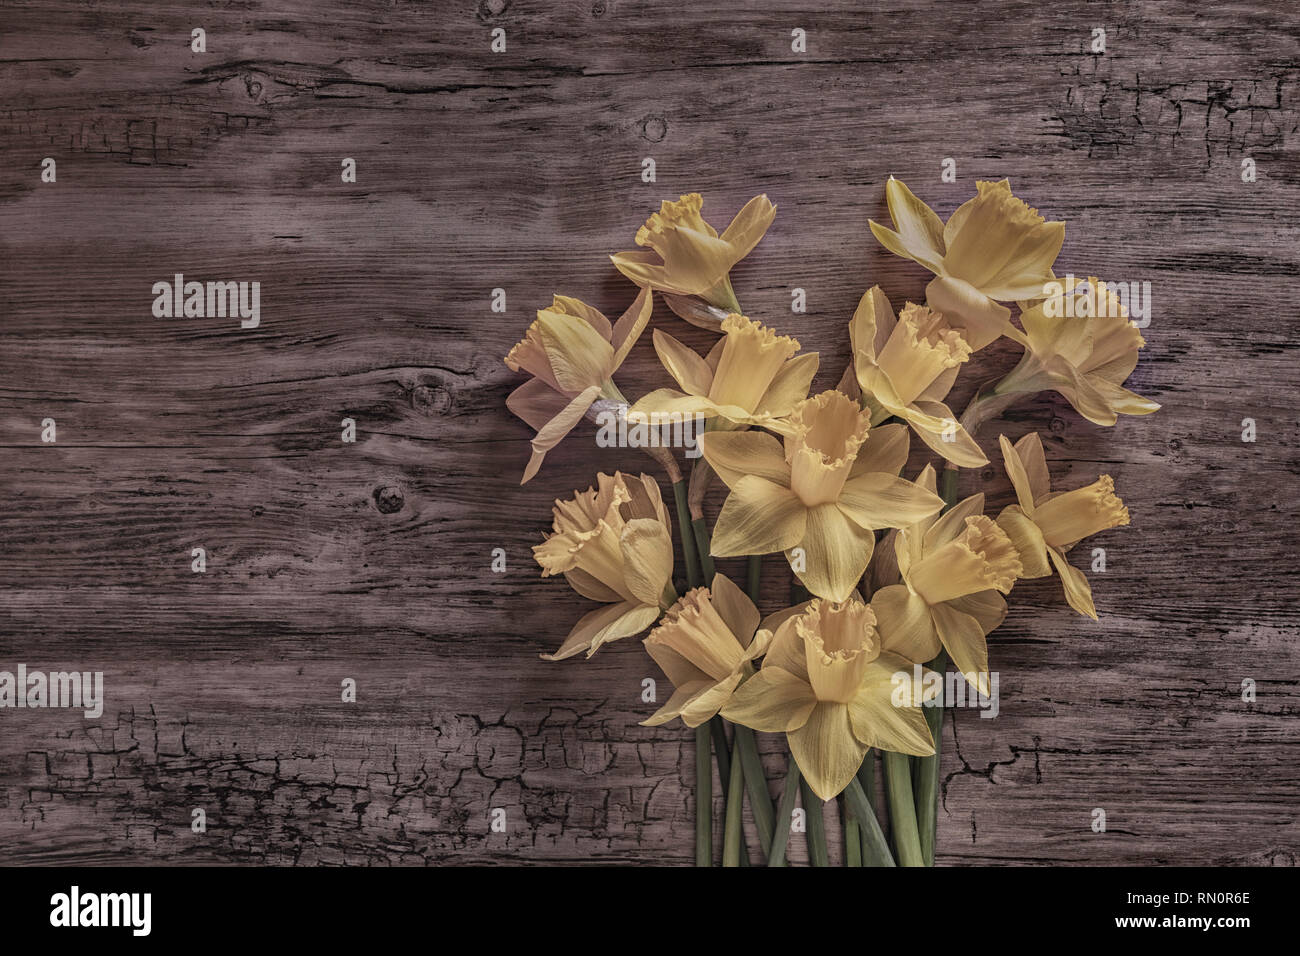 Flat lay of daffodils on a wooden surface, representing a heart - Stock Image